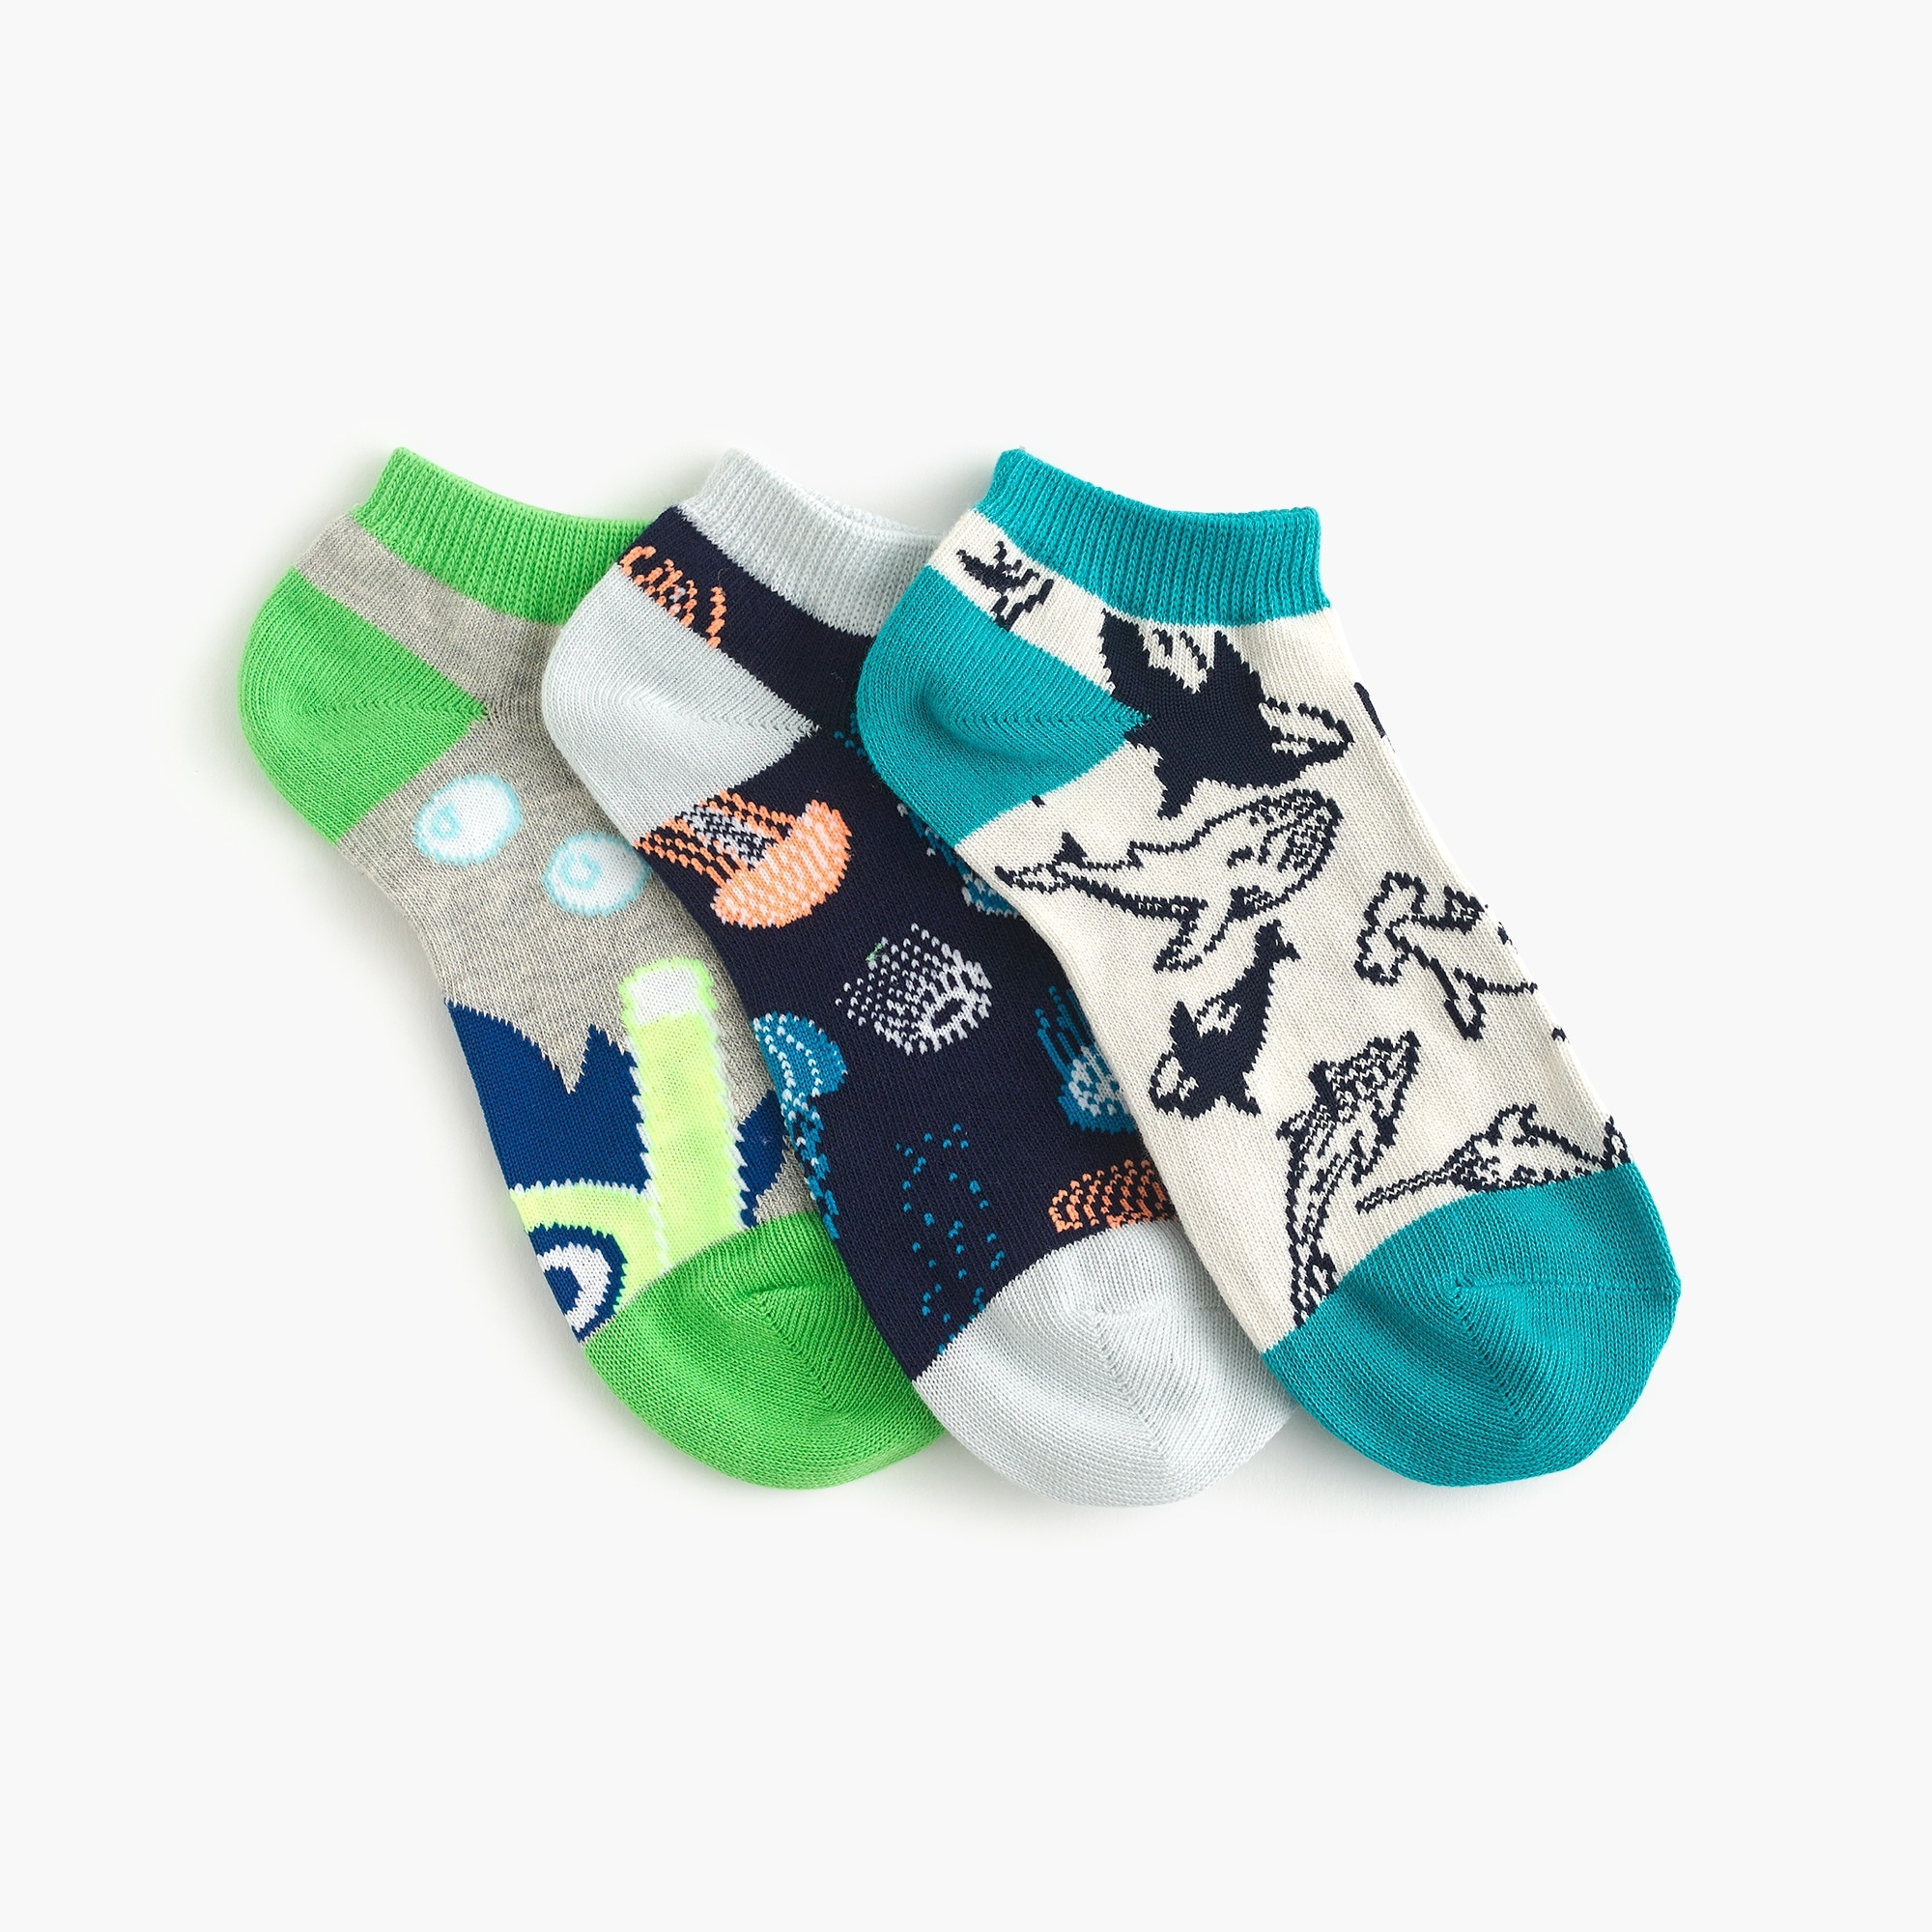 Boys' ankle socks three-pack boy new arrivals c